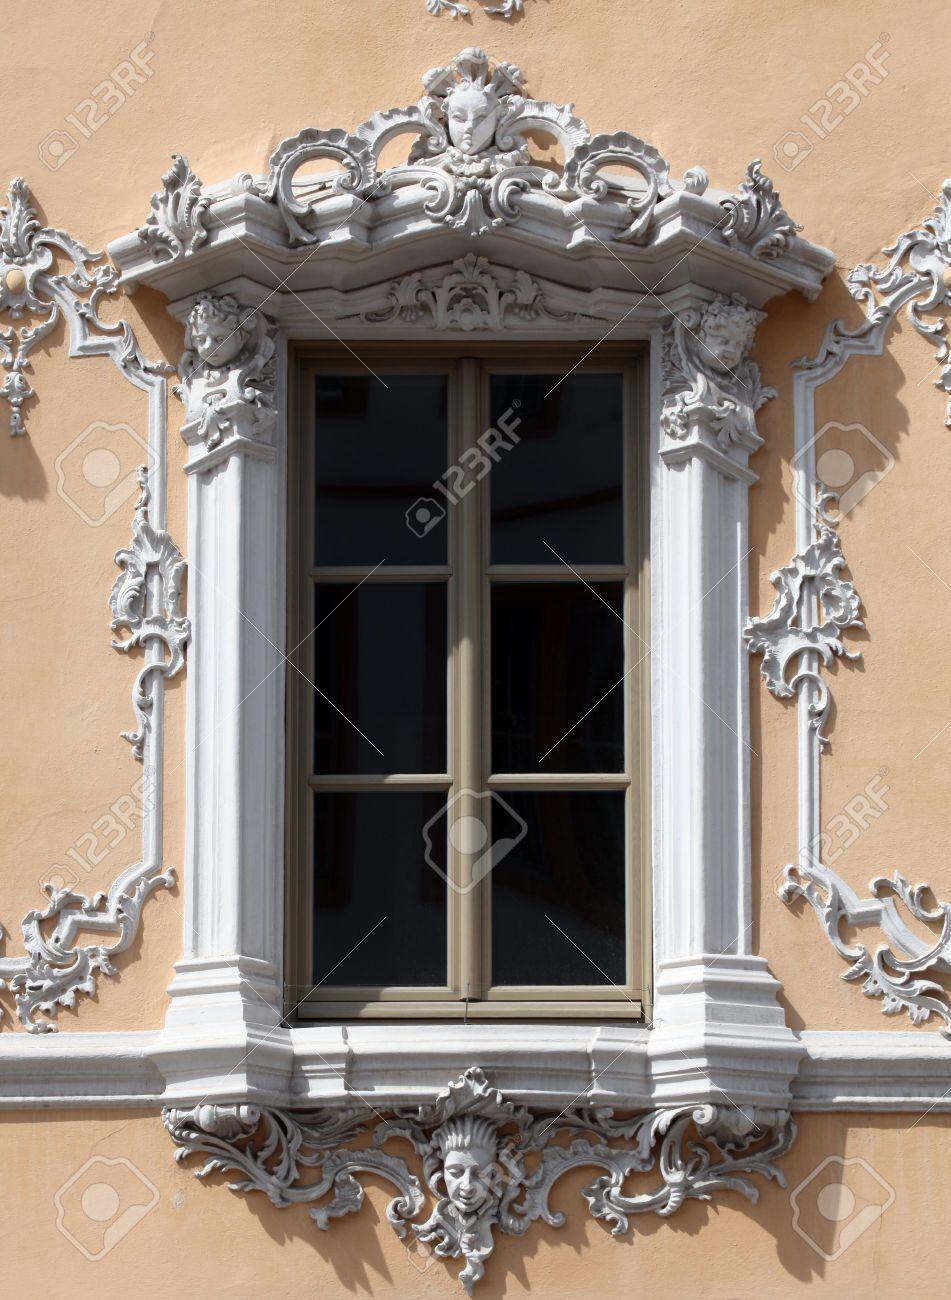 Window, House of Falcon, the finest Rococo style building in the city, Wurzburg, Germany